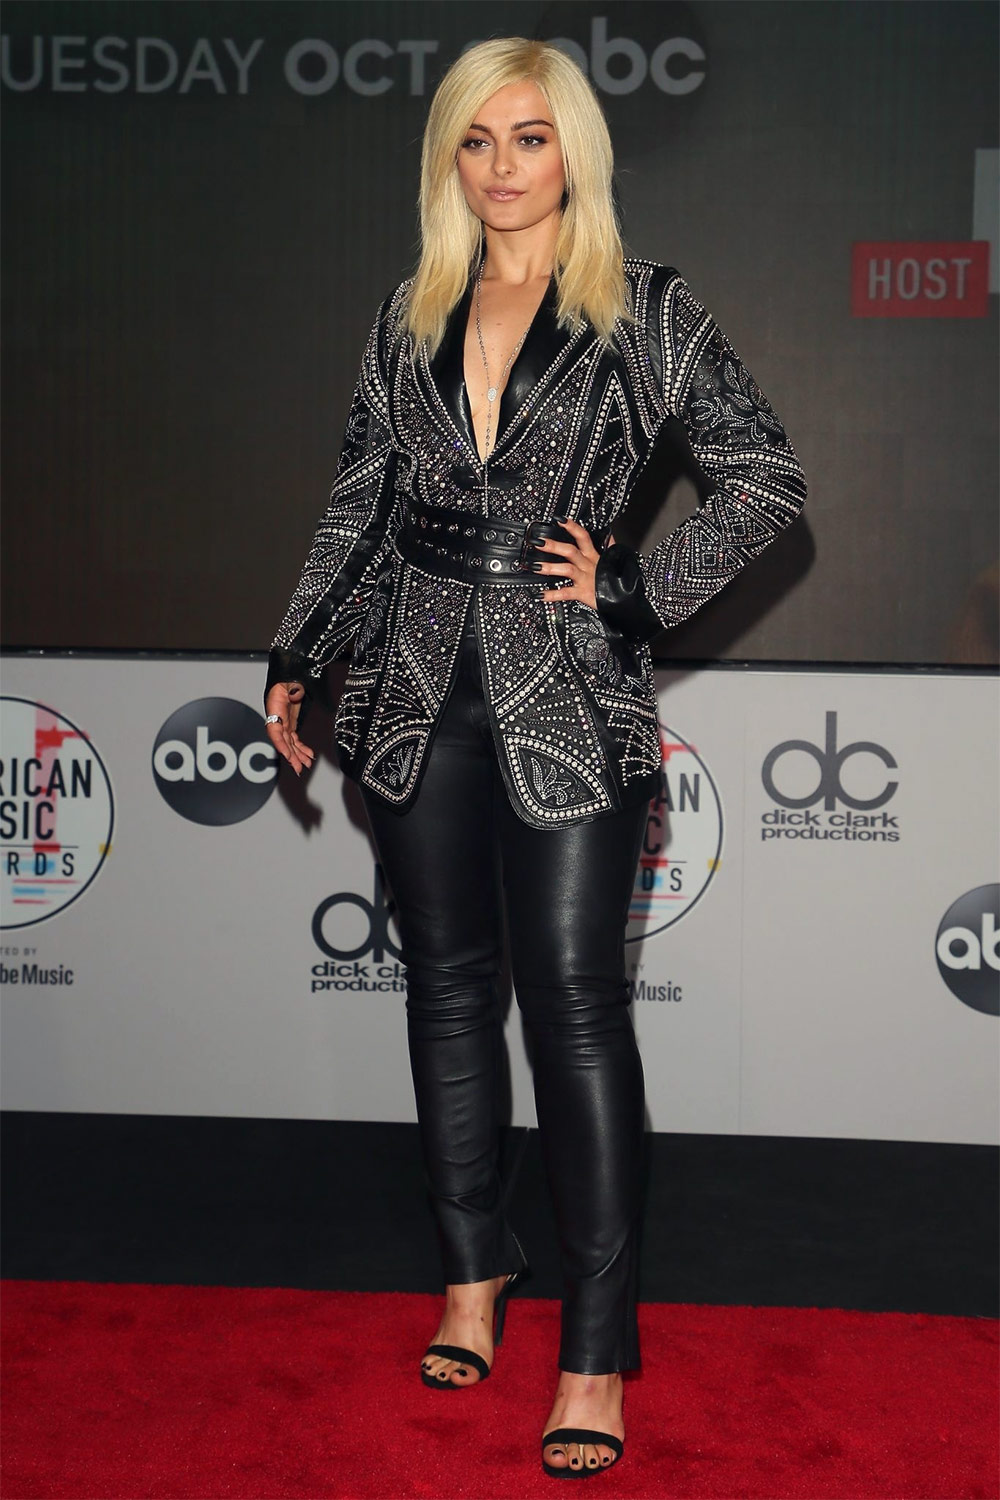 Bebe Rexha attends 2018 American Music Awards